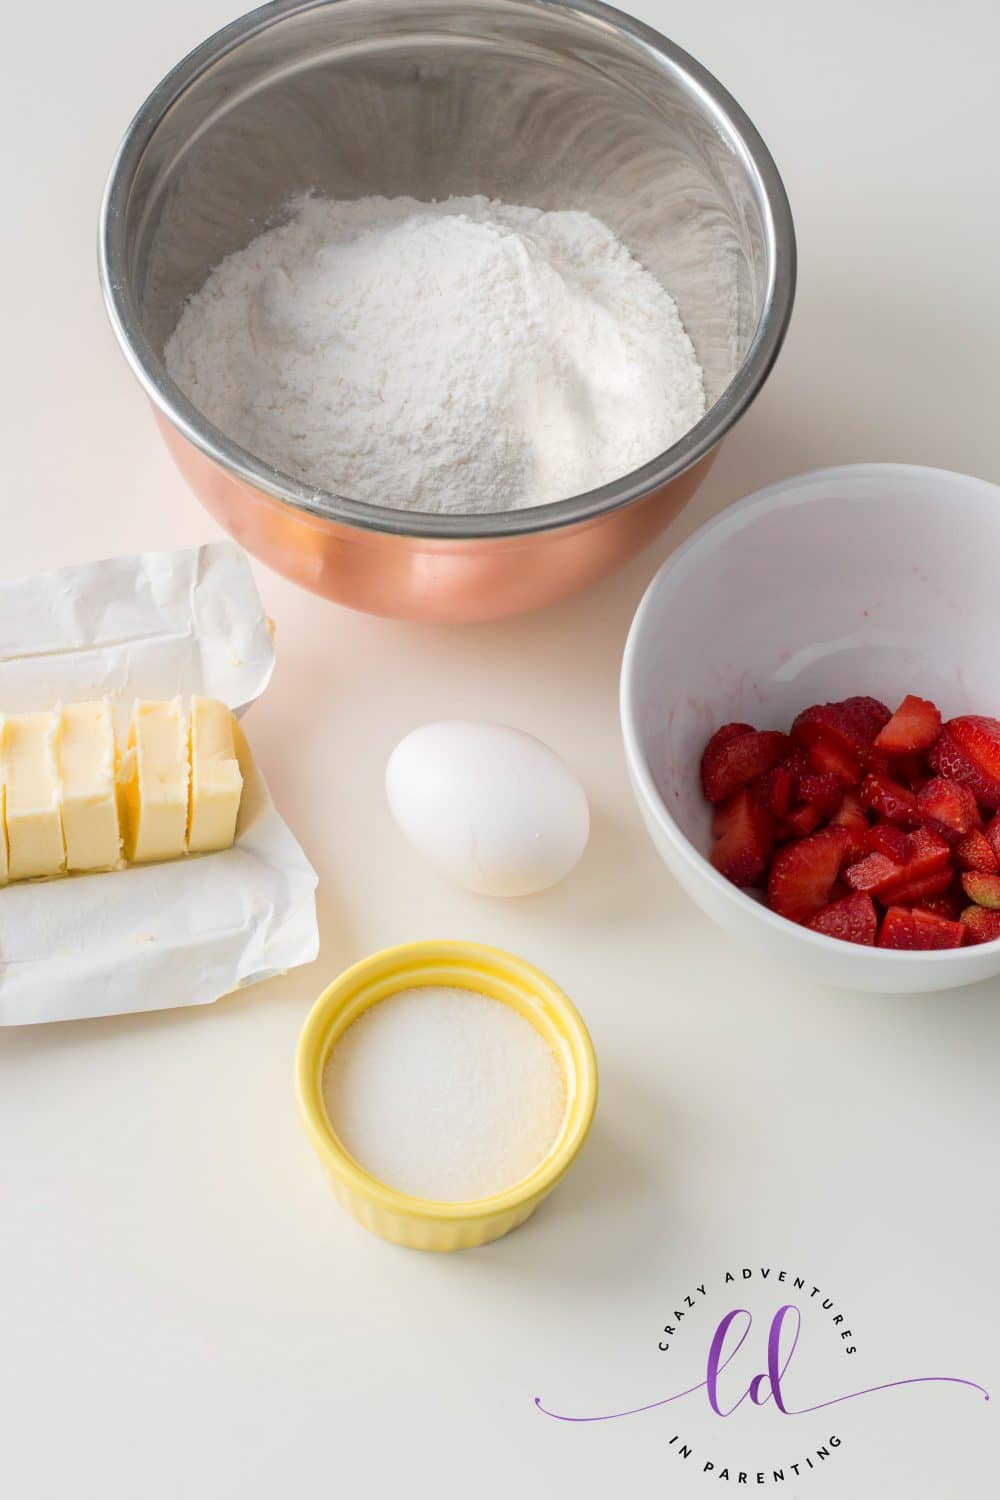 Ingredients to Make Strawberry Scones